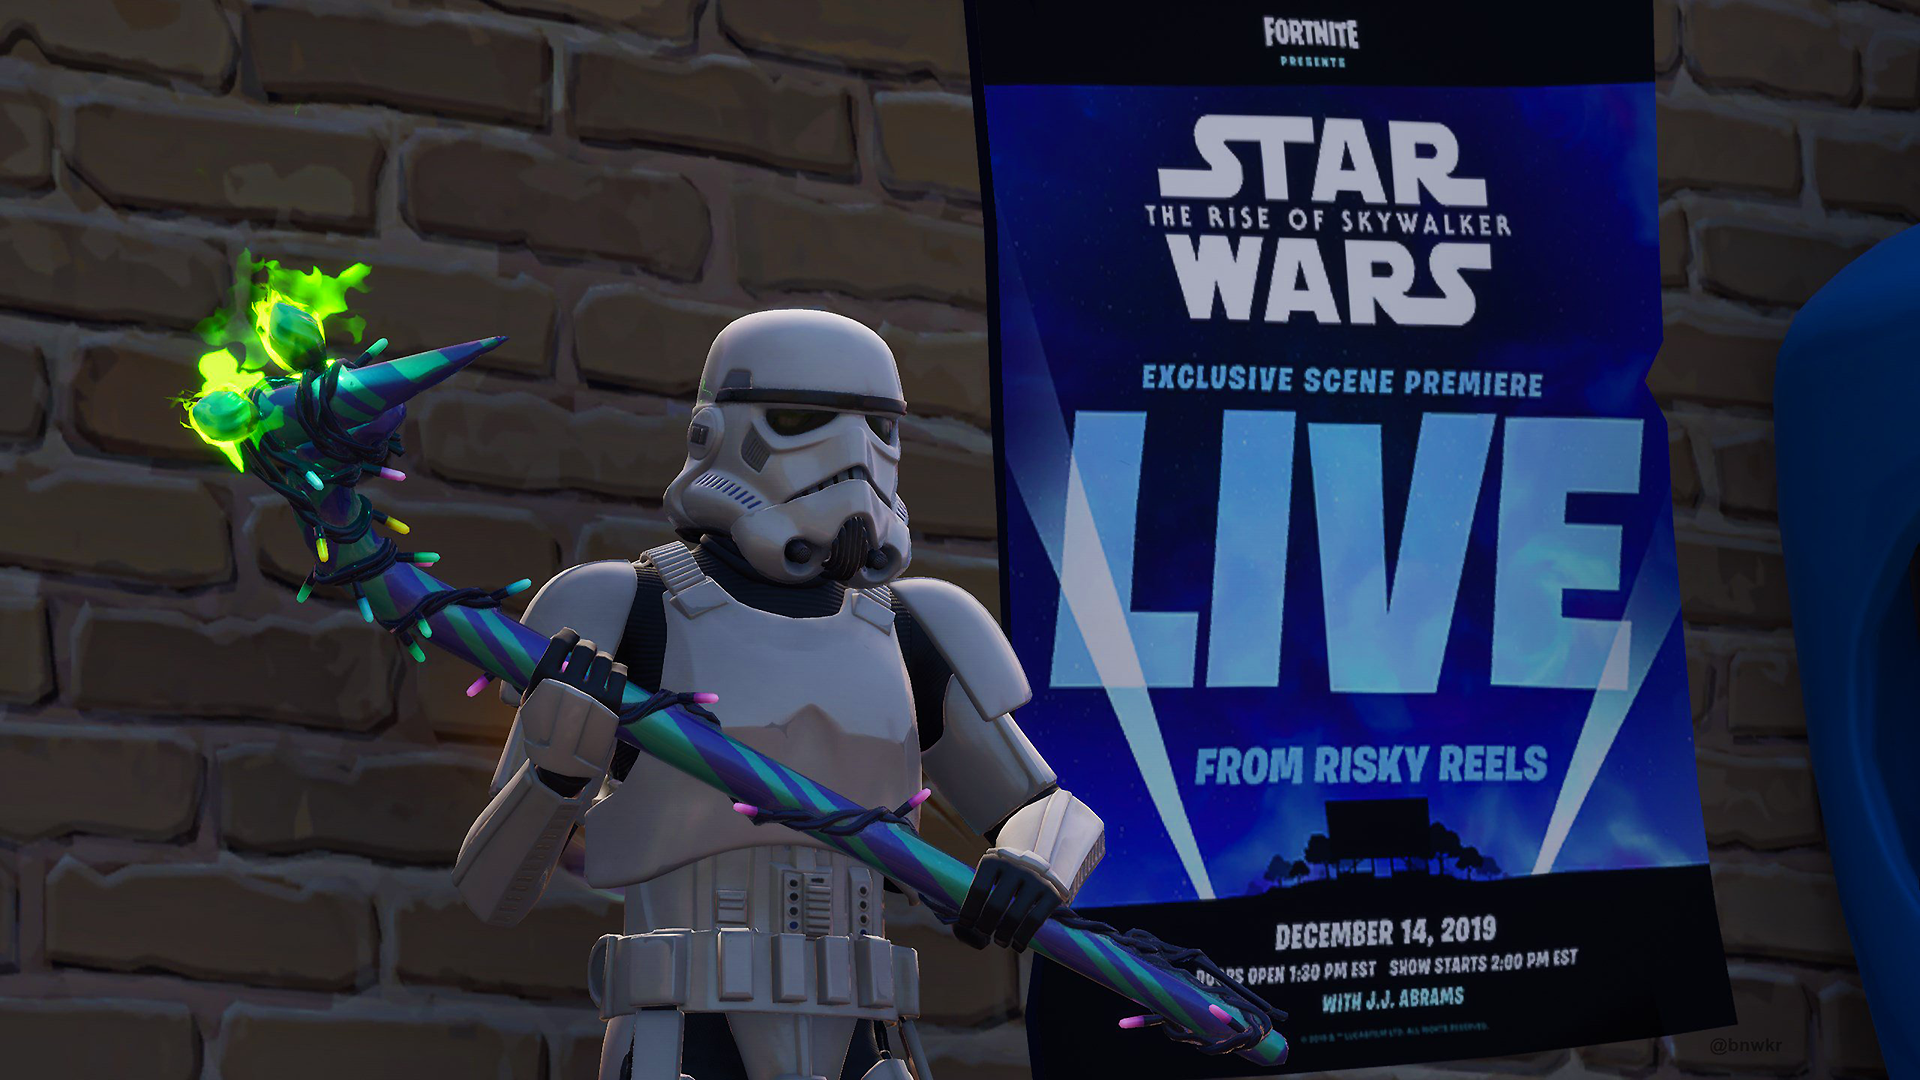 Fortnite Star Wars event: How to watch 'Rise of Skywalker' scene at Risky Reels